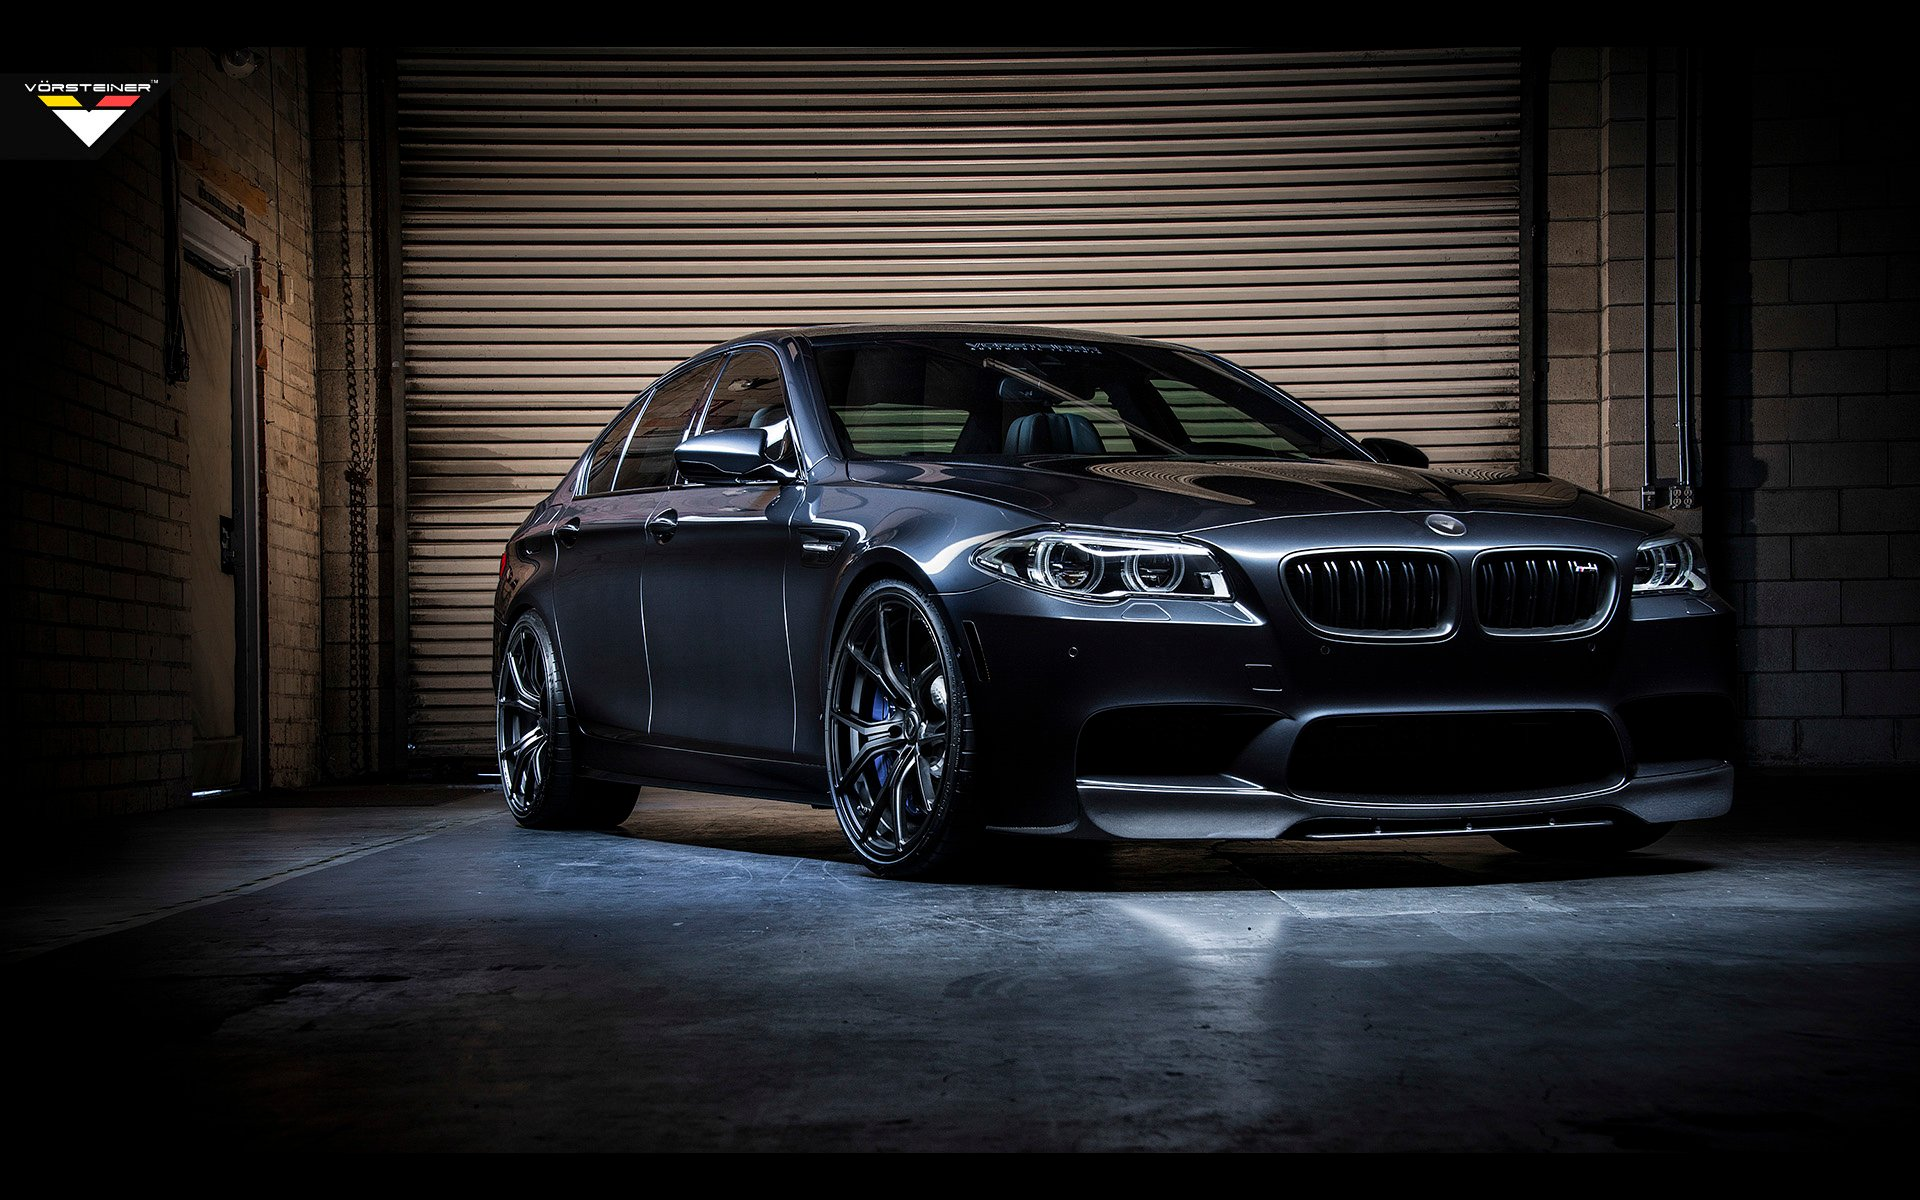 2014 BMW F10 M5 By Vorsteiner Wallpaper HD Car 1920x1200